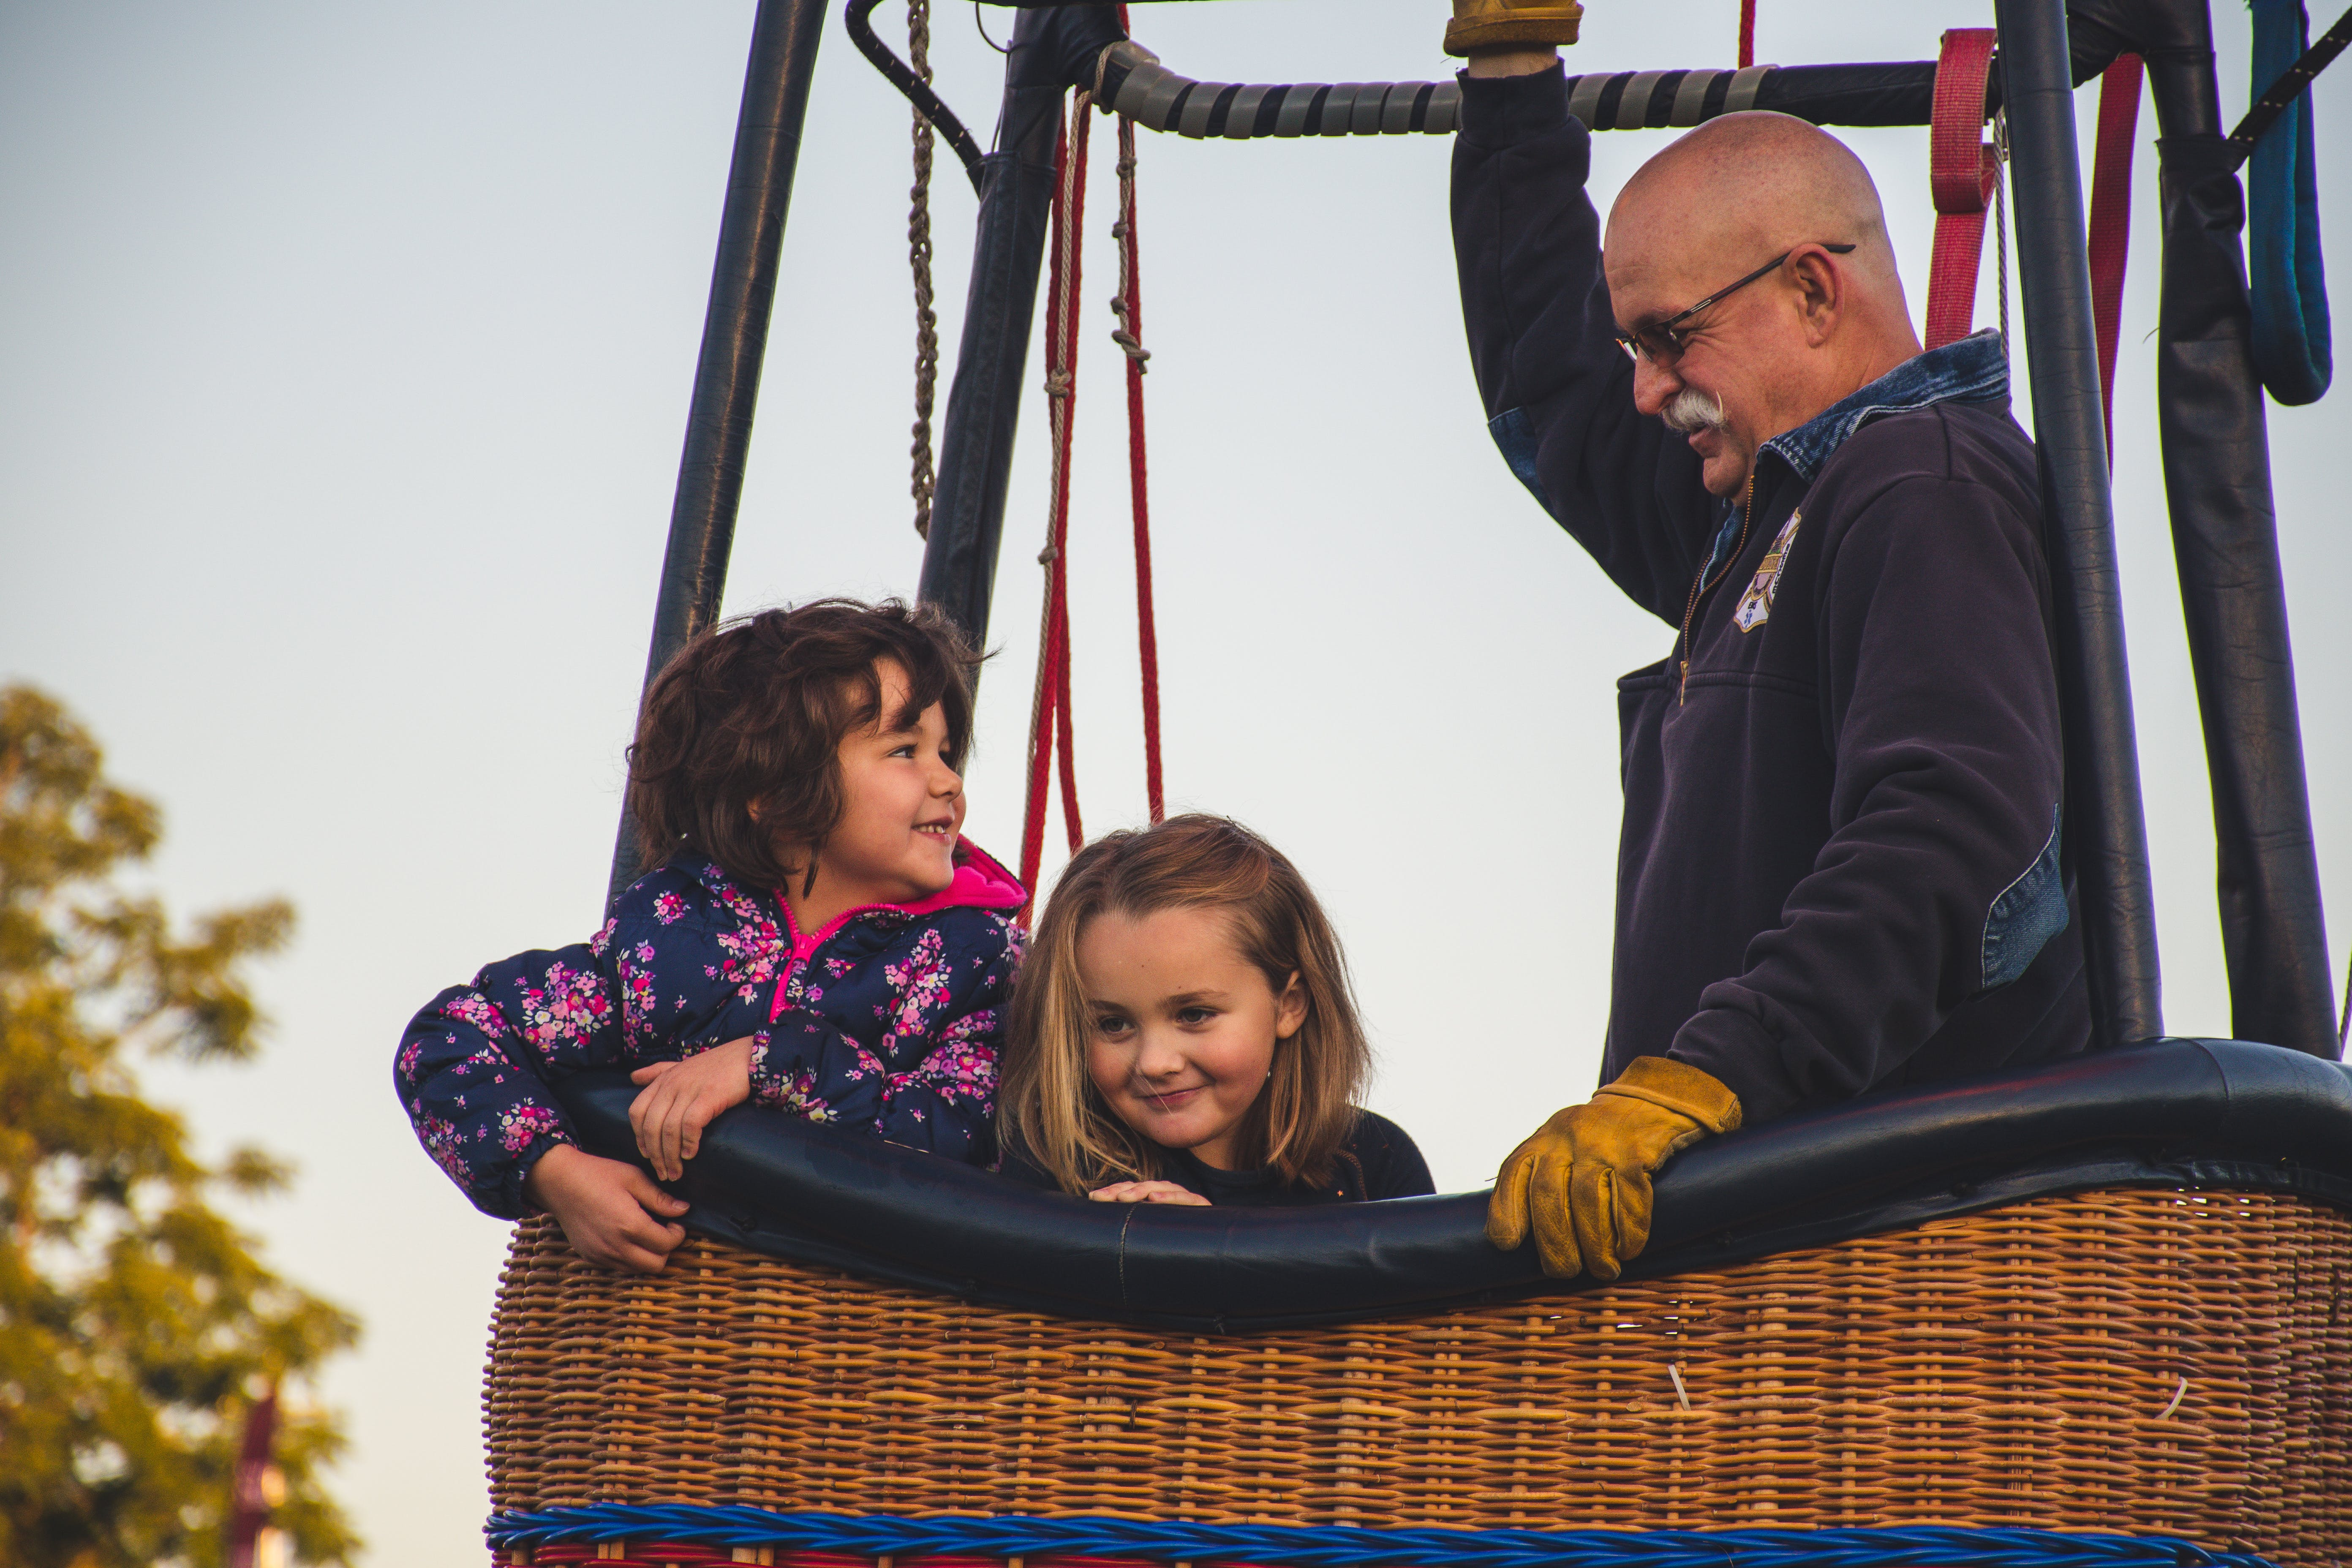 Man and Two Girls Riding on Hot Air Balloon